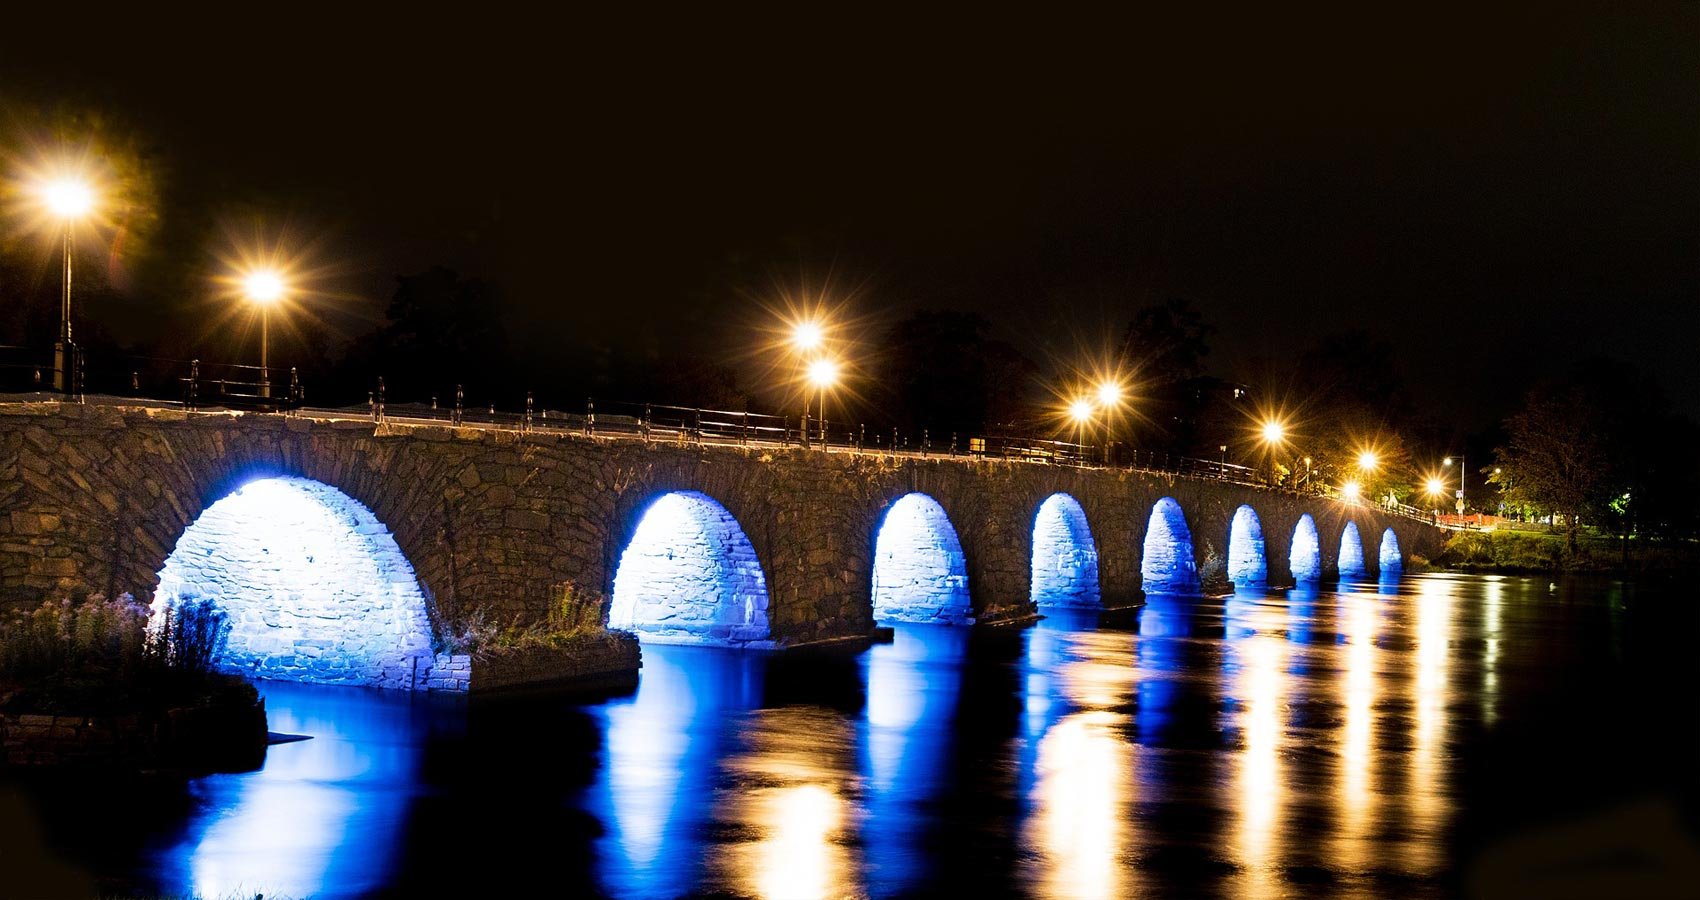 The Bridge, poetry written by Jan McCulloch at Spillwords.com